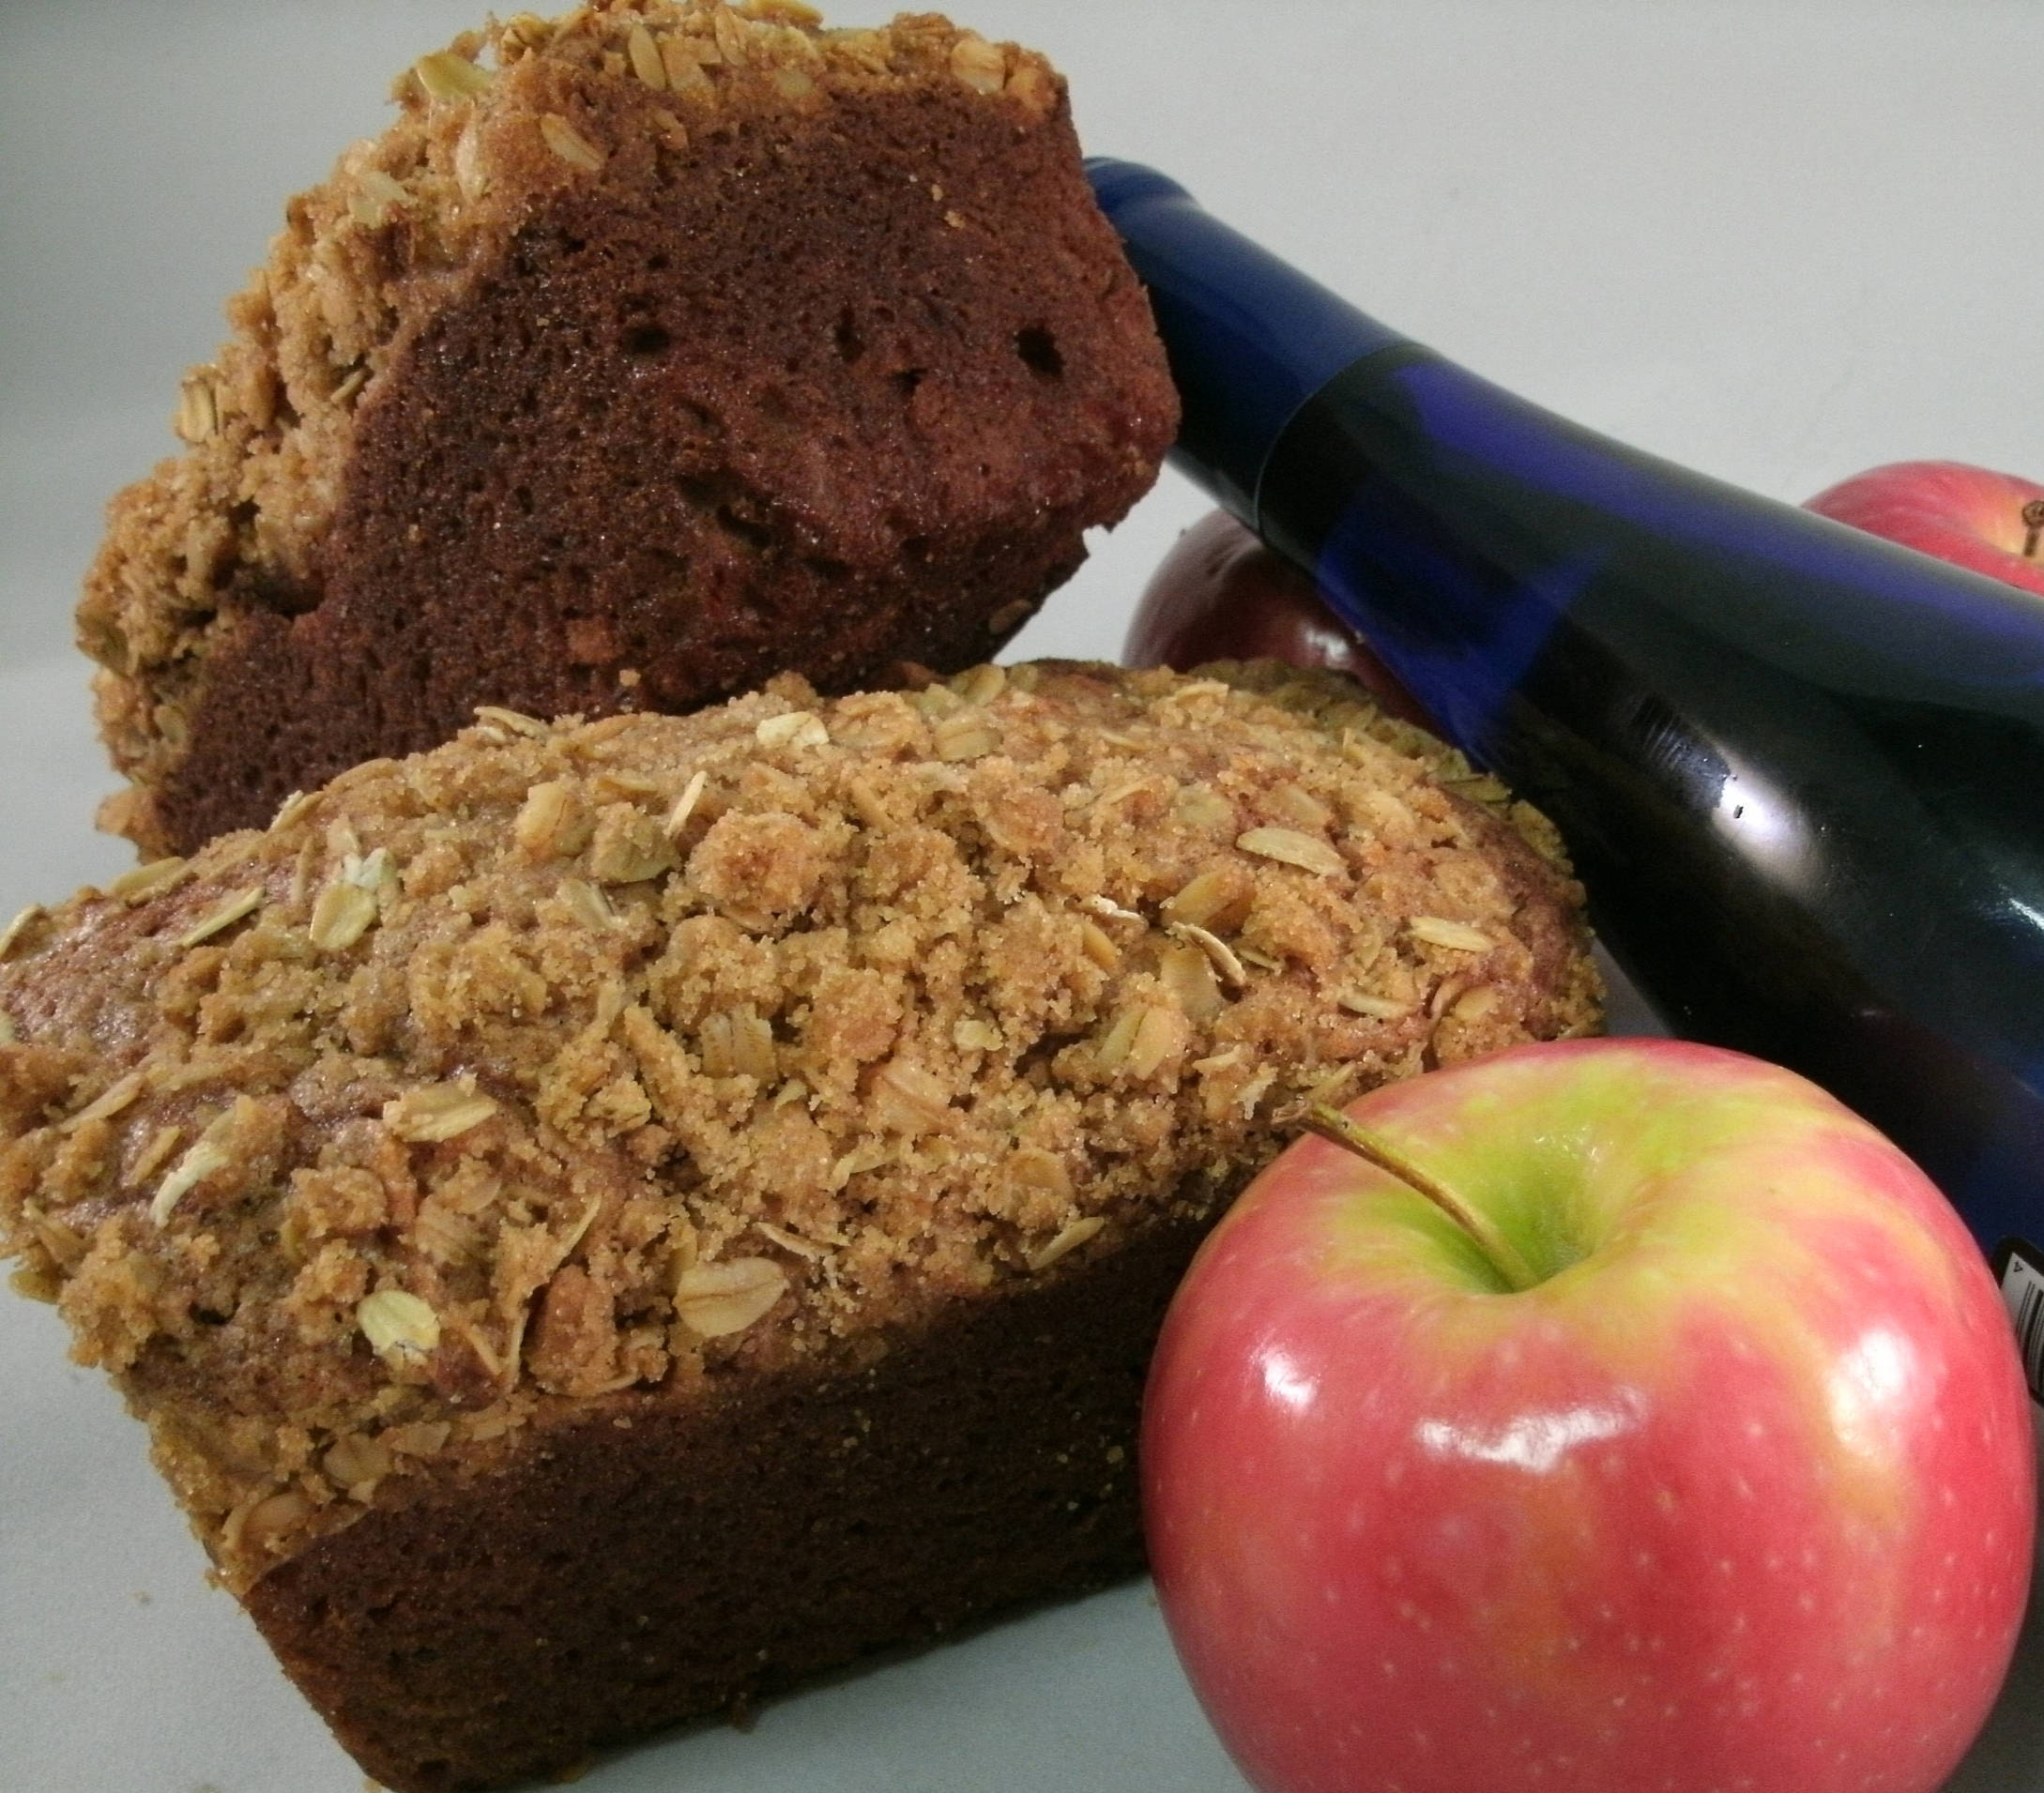 Buy Bread: Apple Bread Homemade Apple Bread Buy 1 Get A 2nd Loaf Free